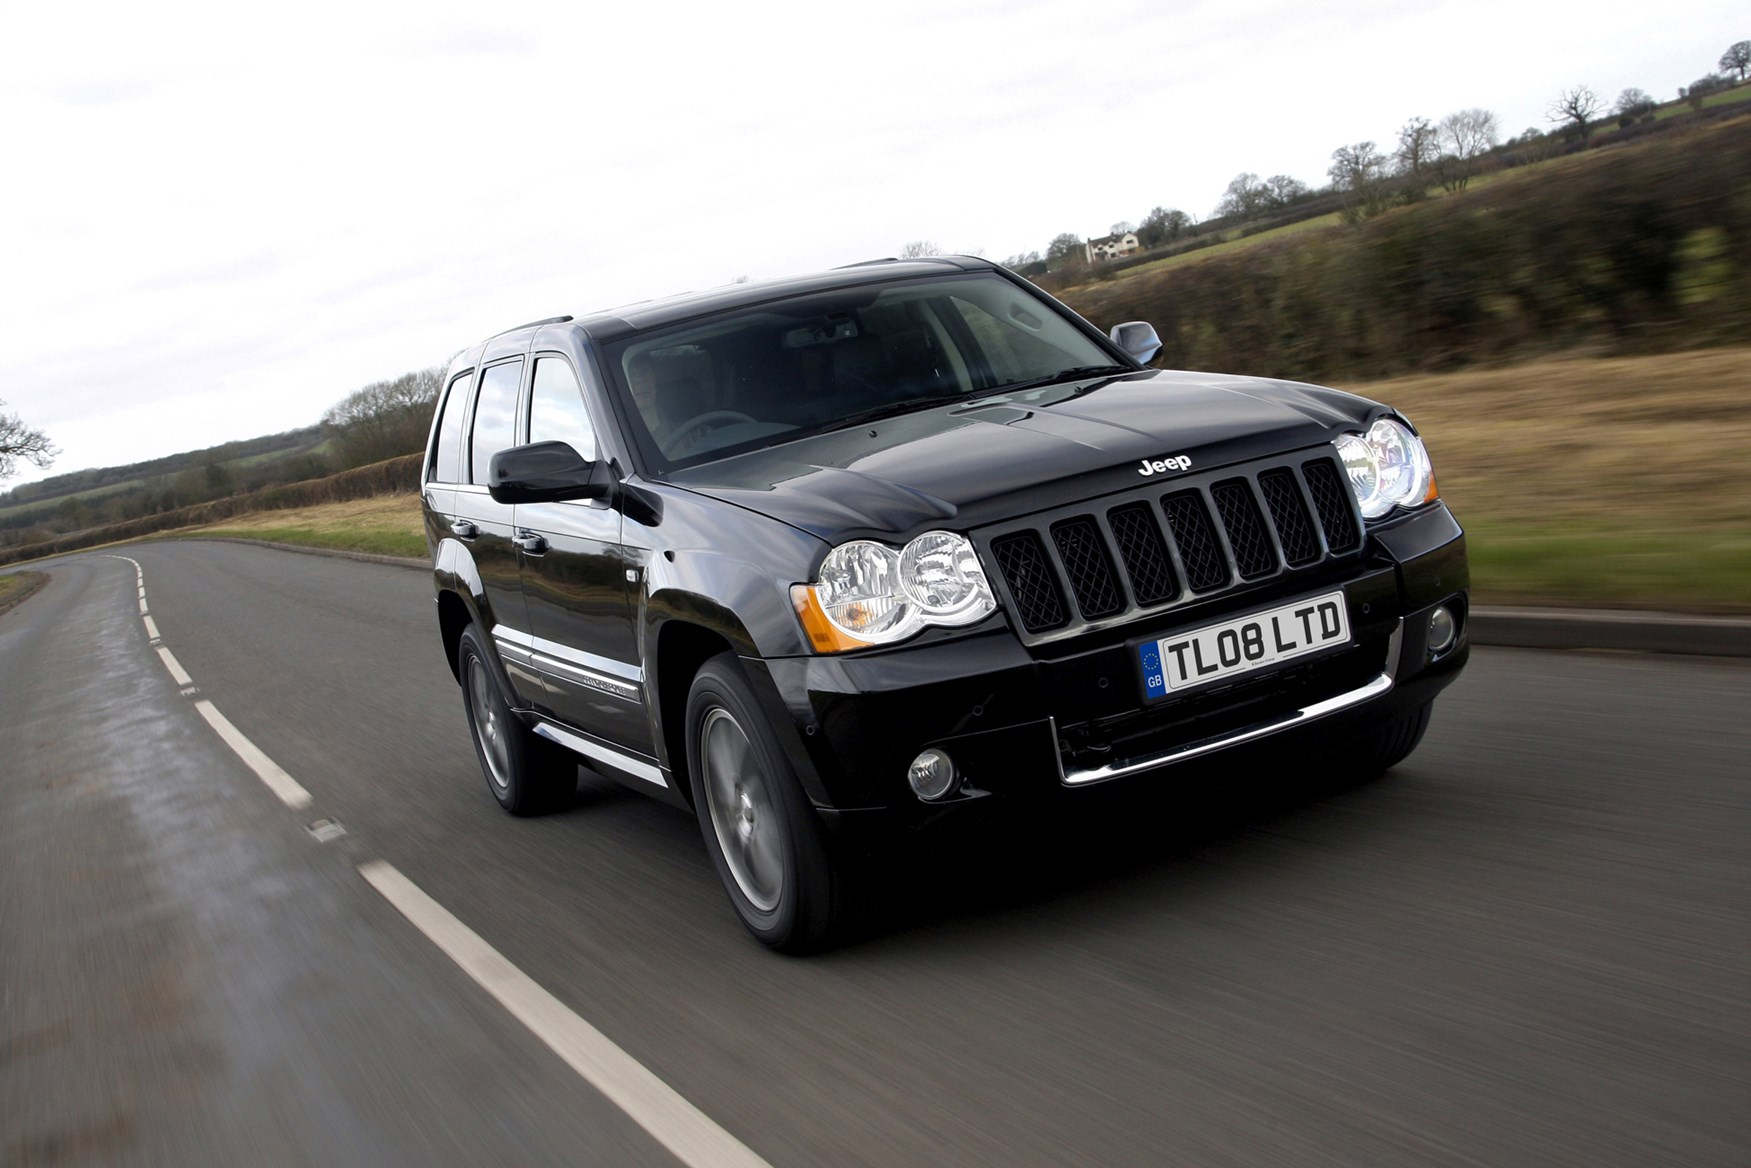 jeep grand cherokee station wagon review 2005 2010 parkers. Cars Review. Best American Auto & Cars Review